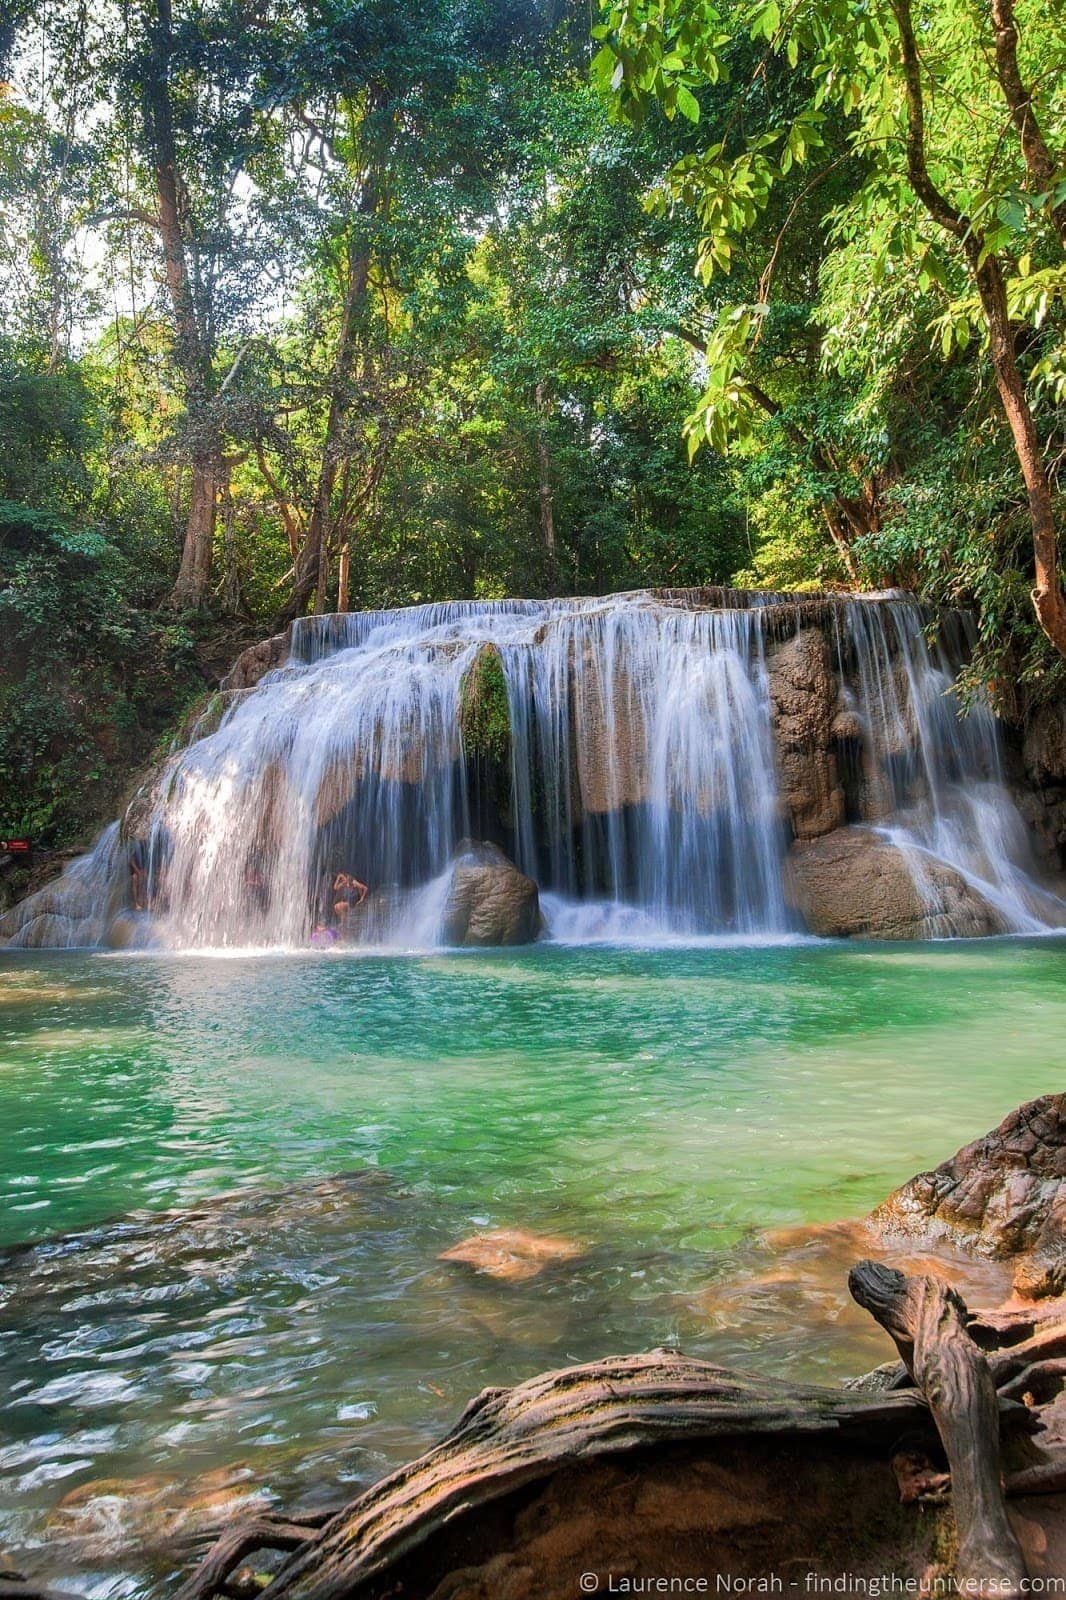 Thailand Week Thai Fashion Food And Fun: 2 Weeks In Thailand: A Detailed Thailand Itinerary And